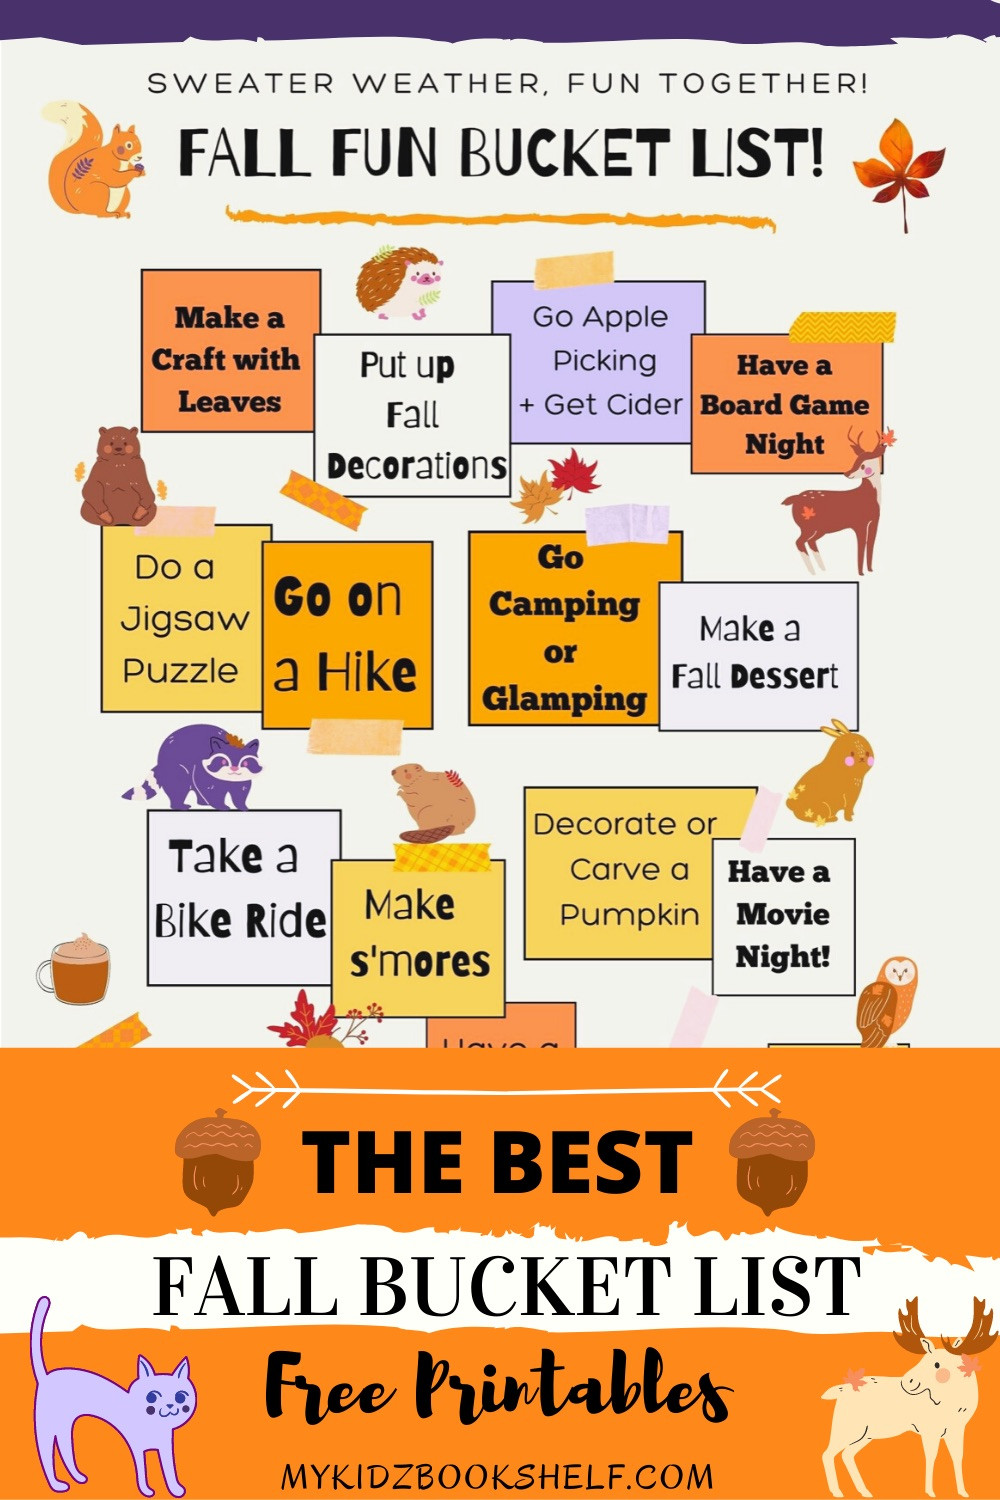 Fall Fun Bucket List Free Printables Message Board styles with animals and acorns